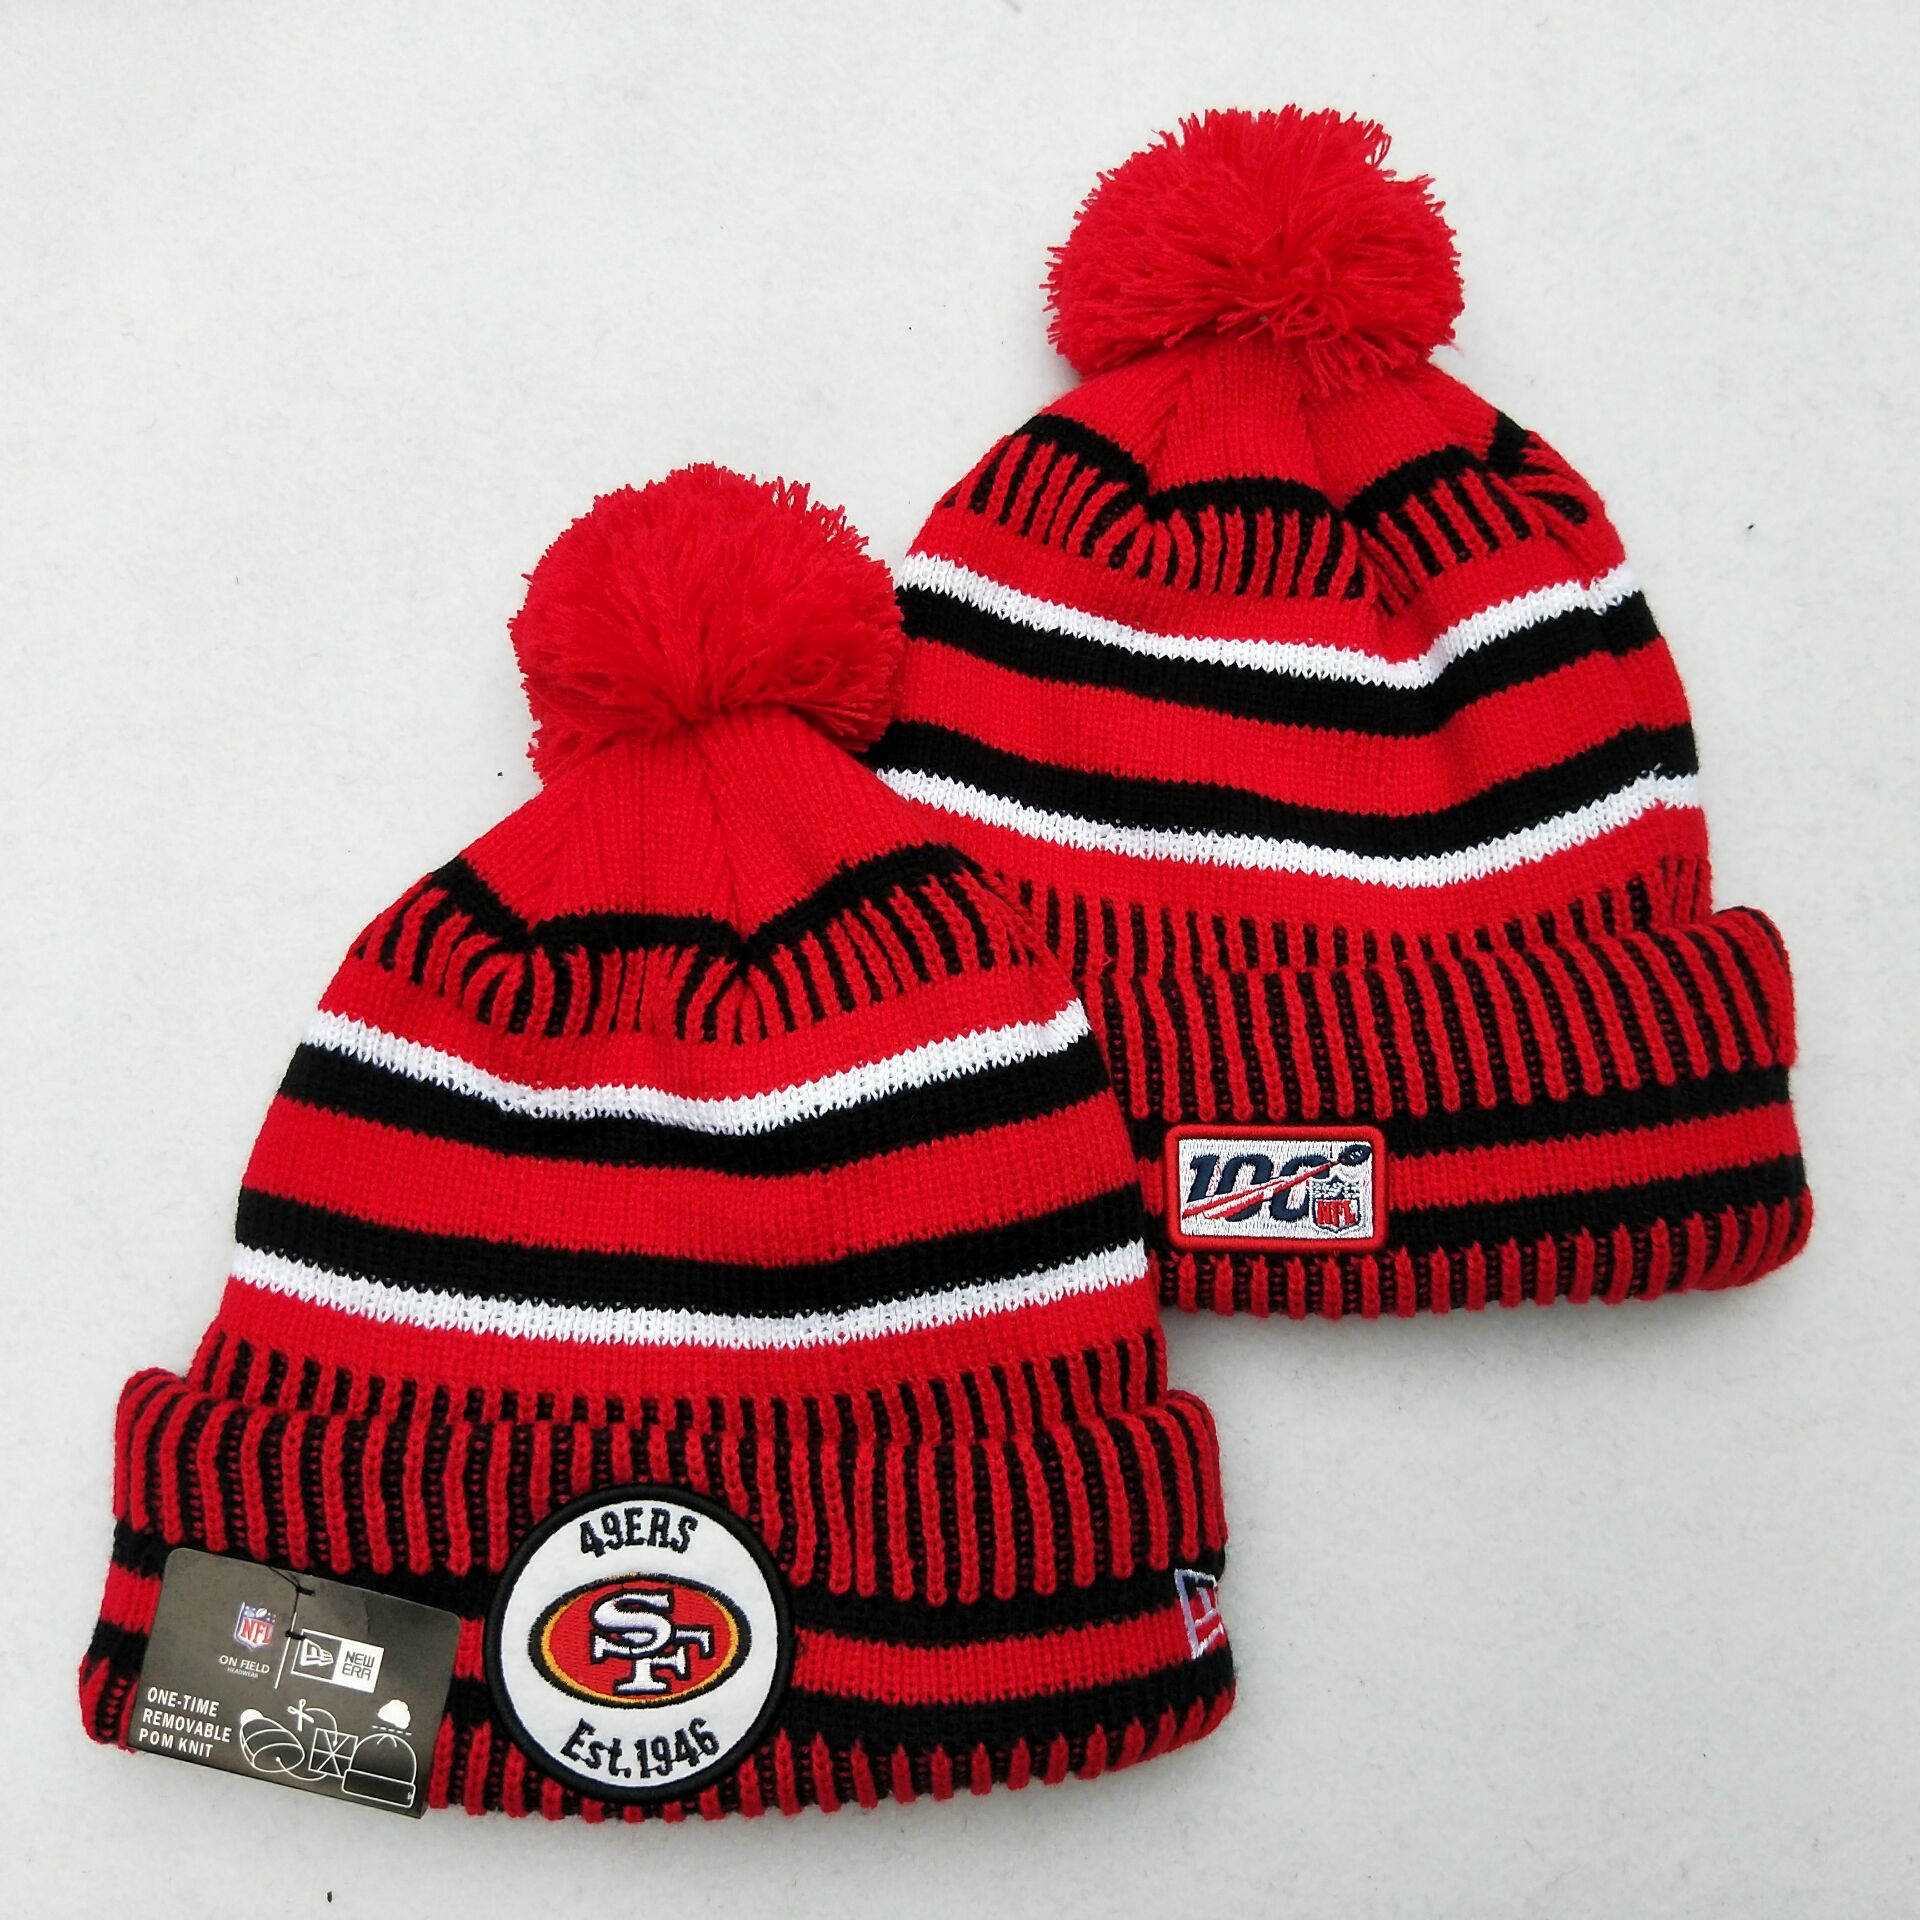 49ers Team Logo Red 100th Season Pom Knit Hat YD